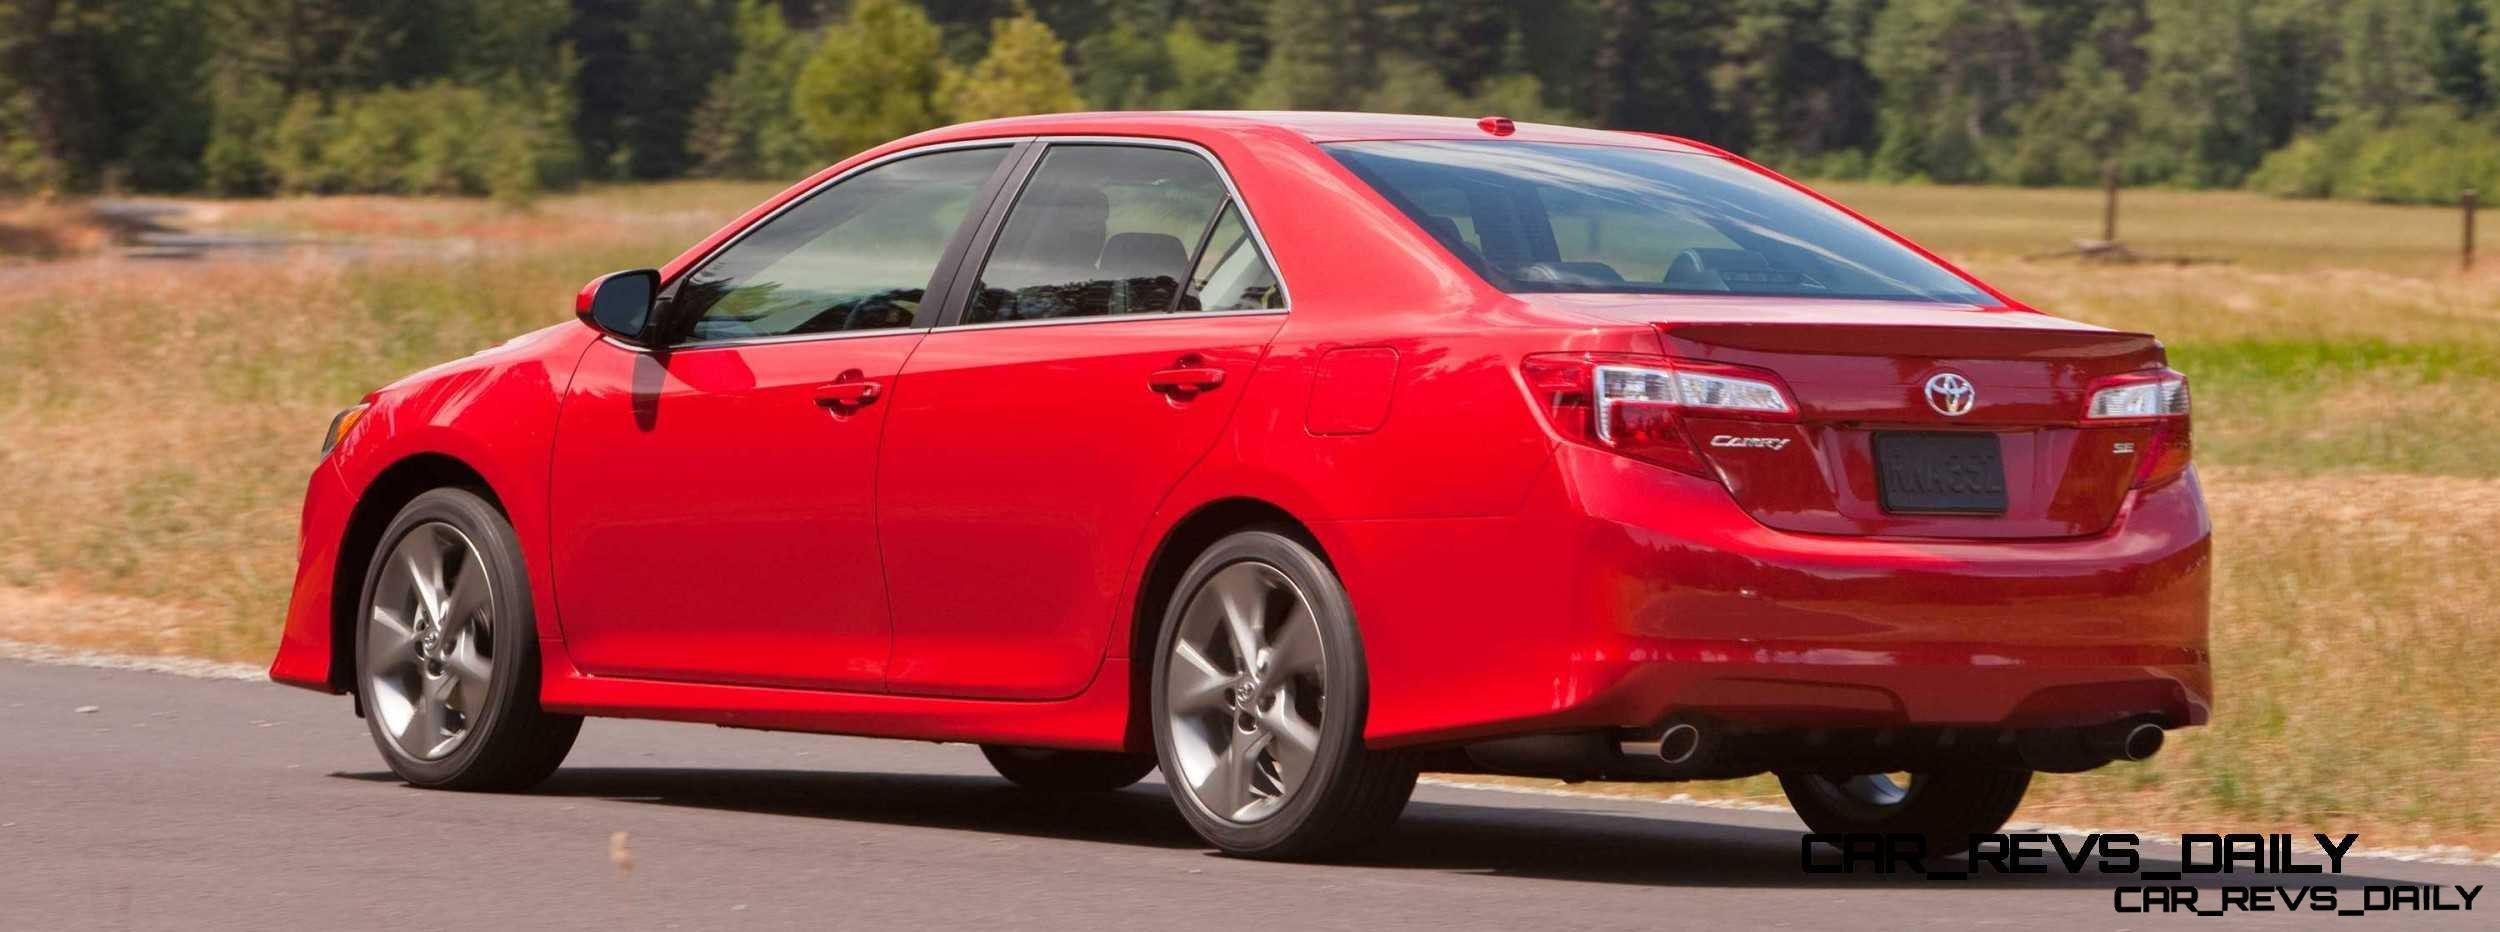 Difference Between Toyota Camry 2014 And 2015